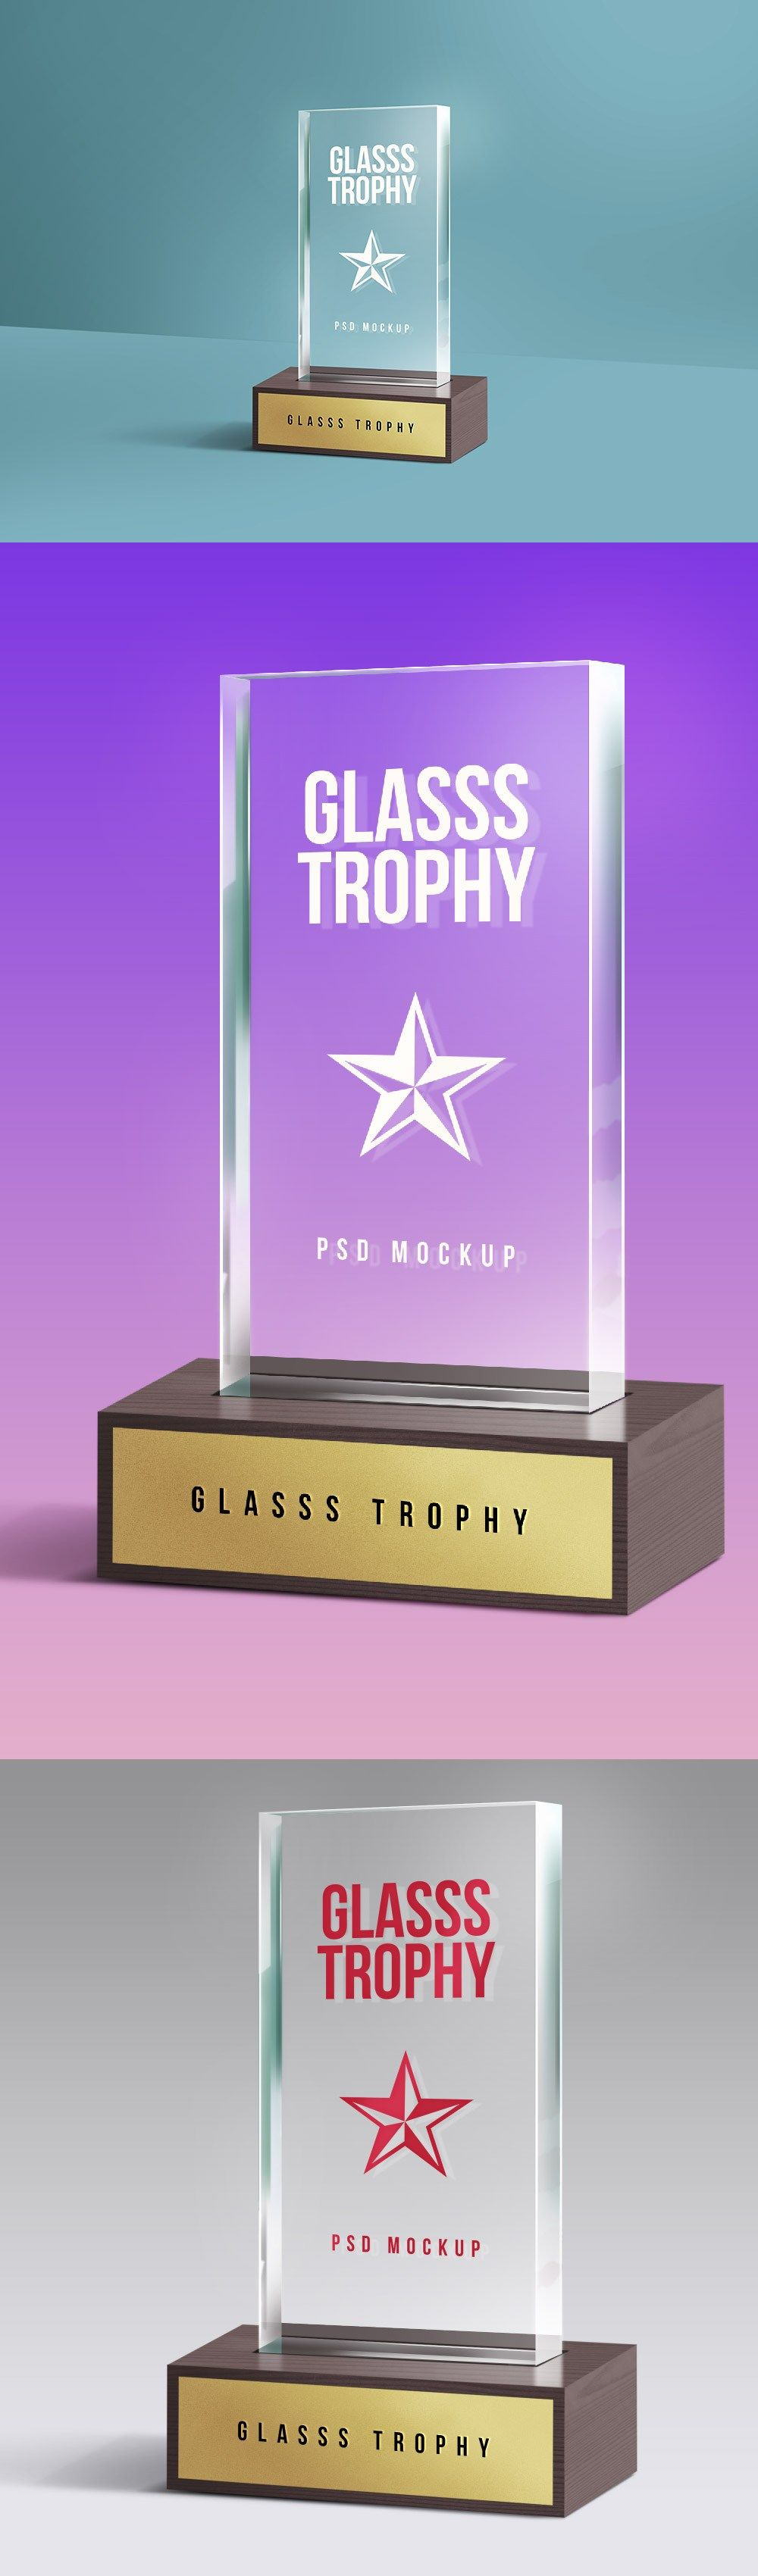 discover a realistic looking glass trophy mockup psd providing you a